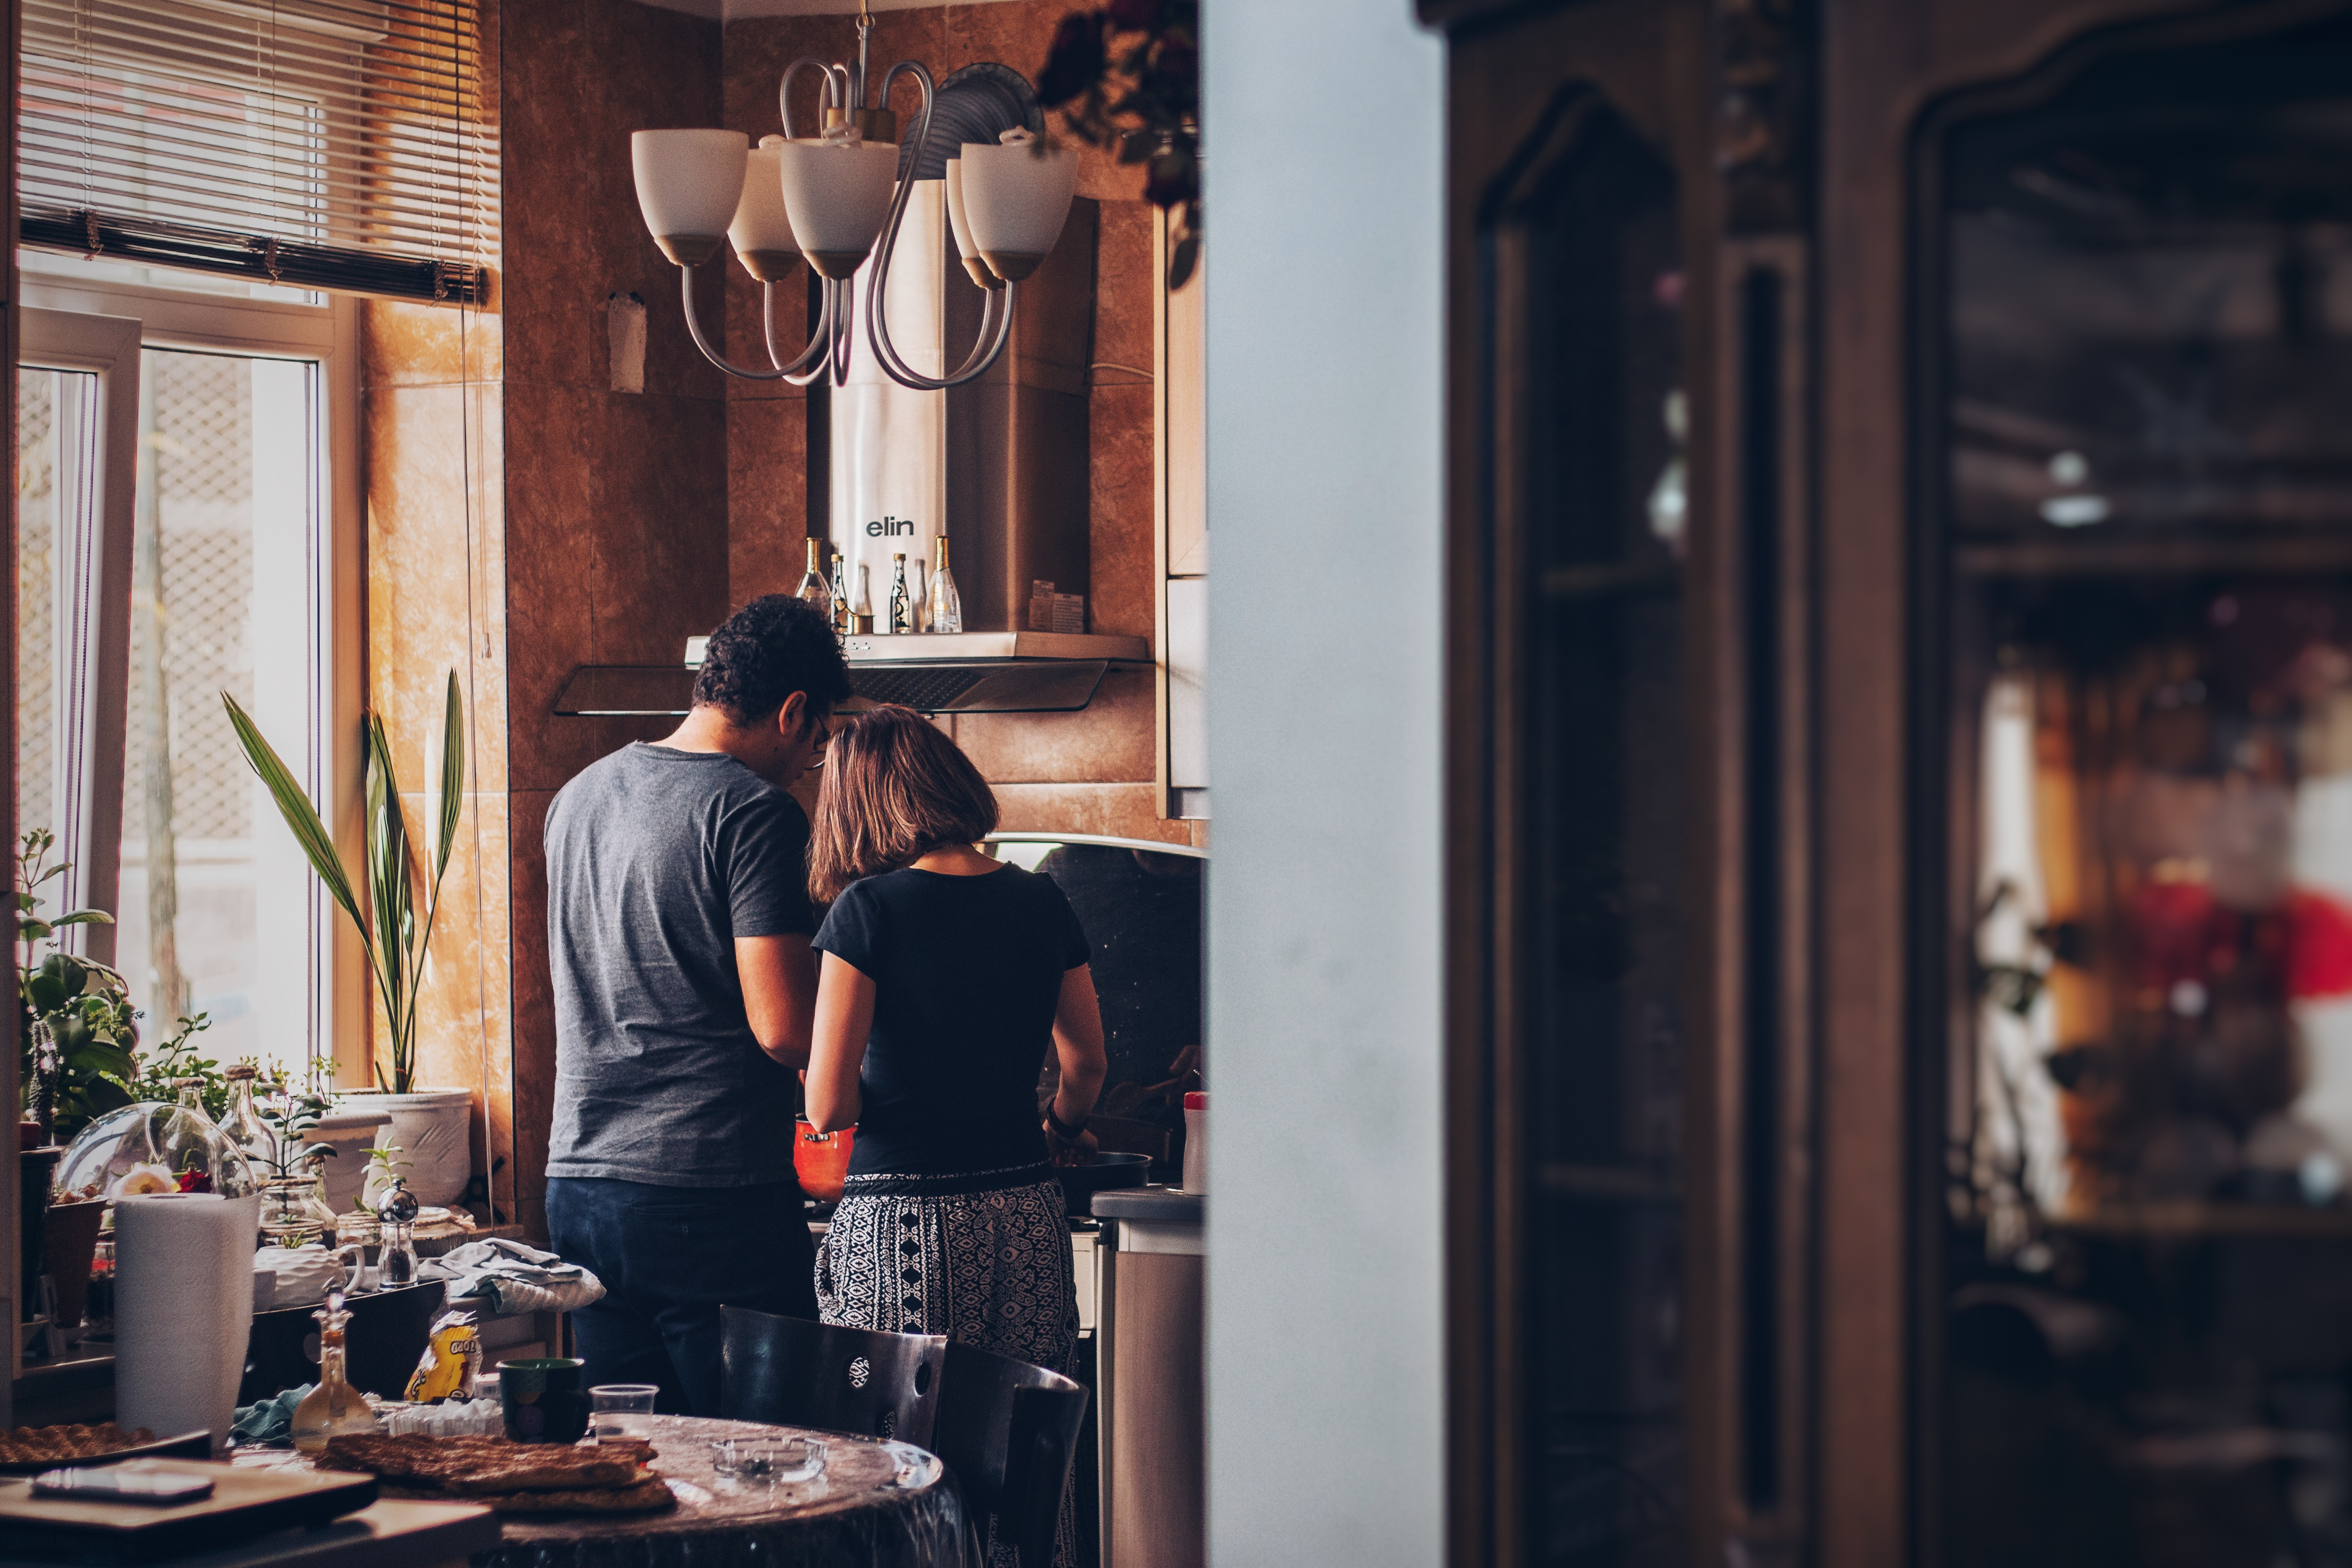 This is a picture of two people cooking in their kitchen. This is a photo of a couple cooking dinner by a window with stainless steel appliances.